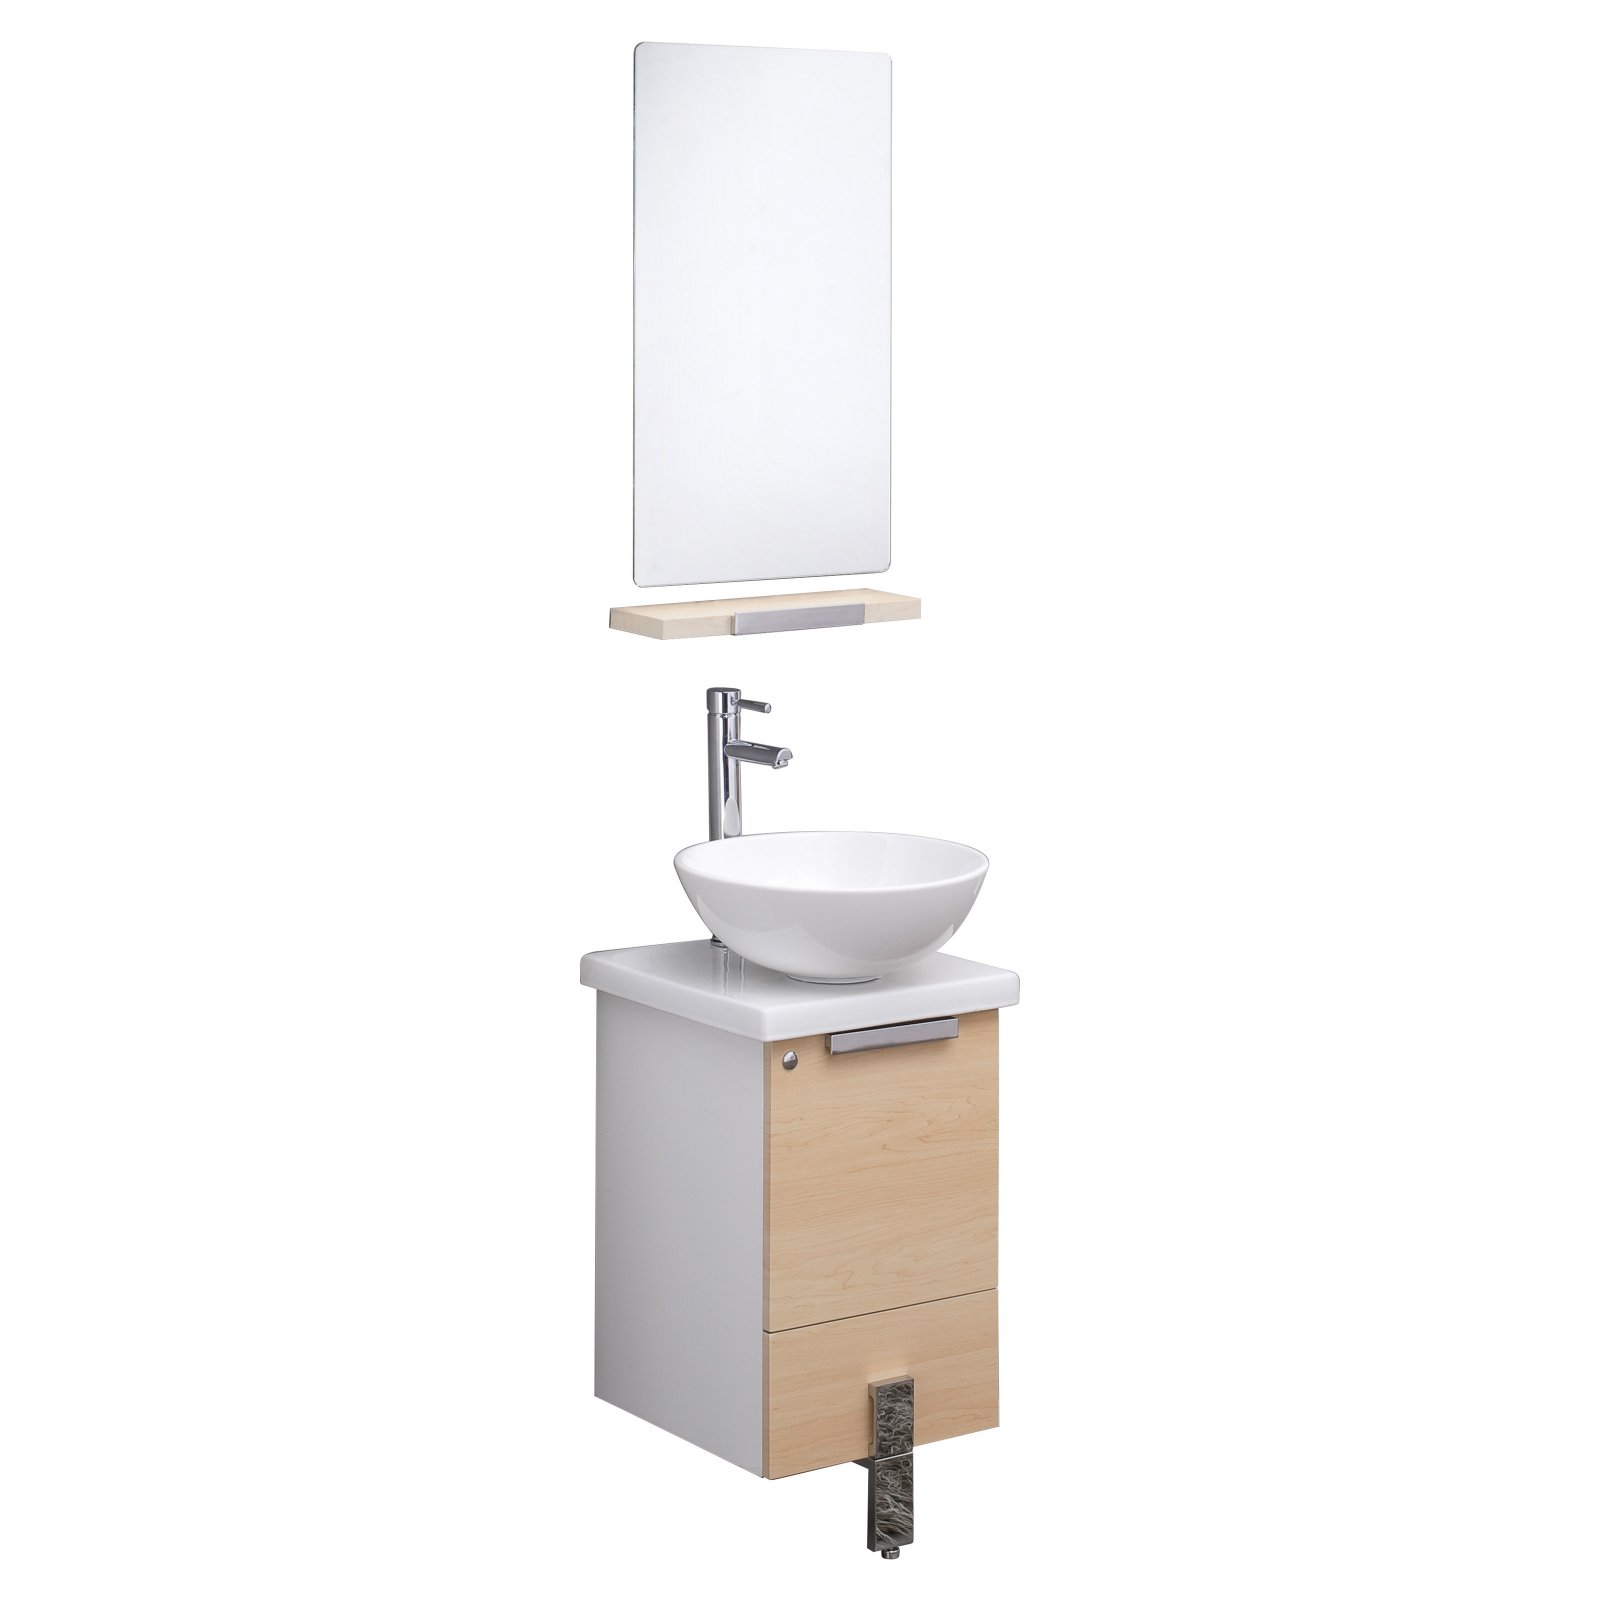 Fresca Fvn8110 Adour 16 In Wall Mounted Single Bathroom Vanity Set Walmart Com Walmart Com